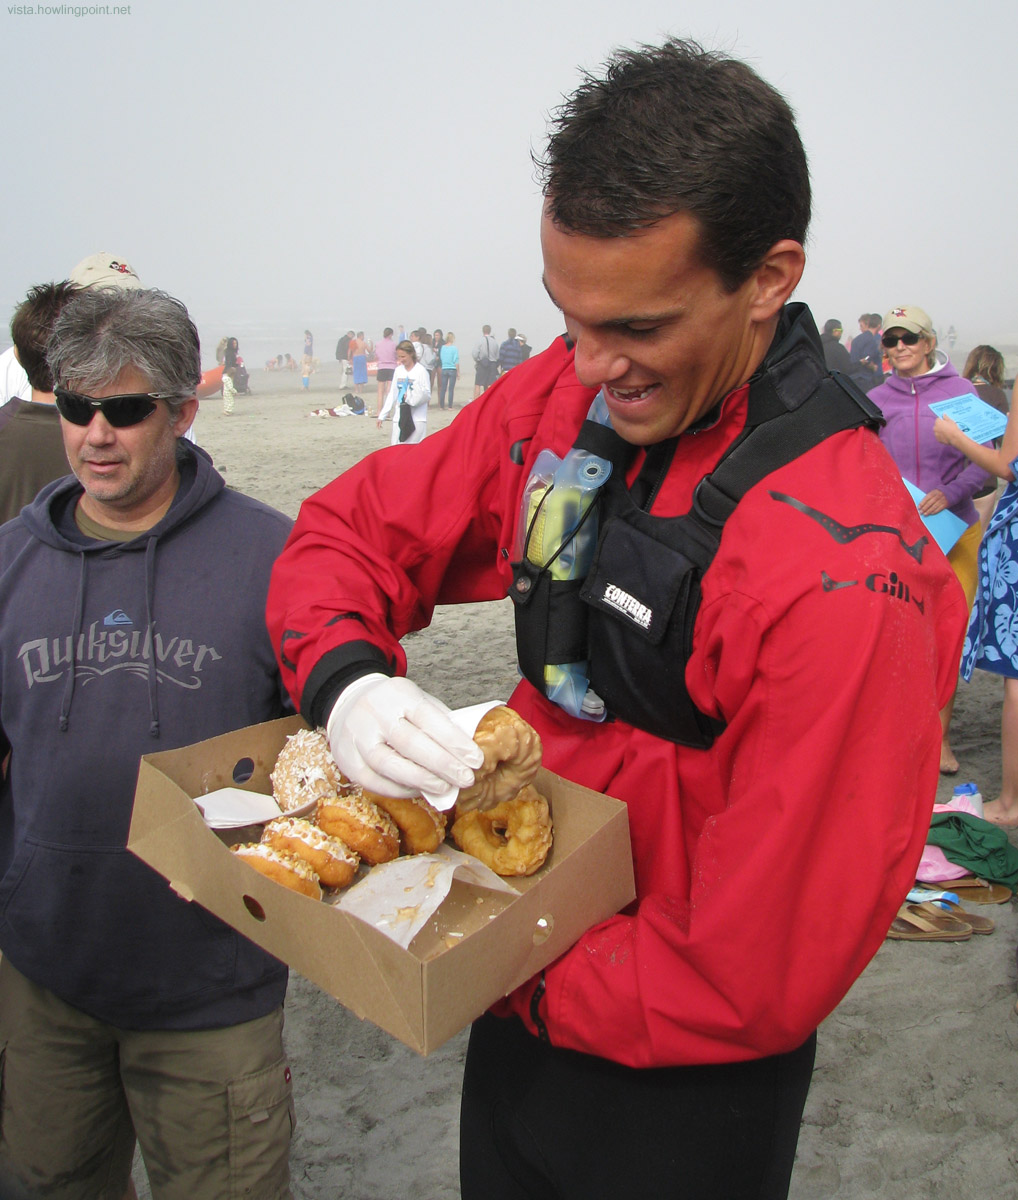 Lifeguard Serving Donuts: Mmmm, lifeguards.  Mmmm, donuts.  What better way could there be to start a New Year.